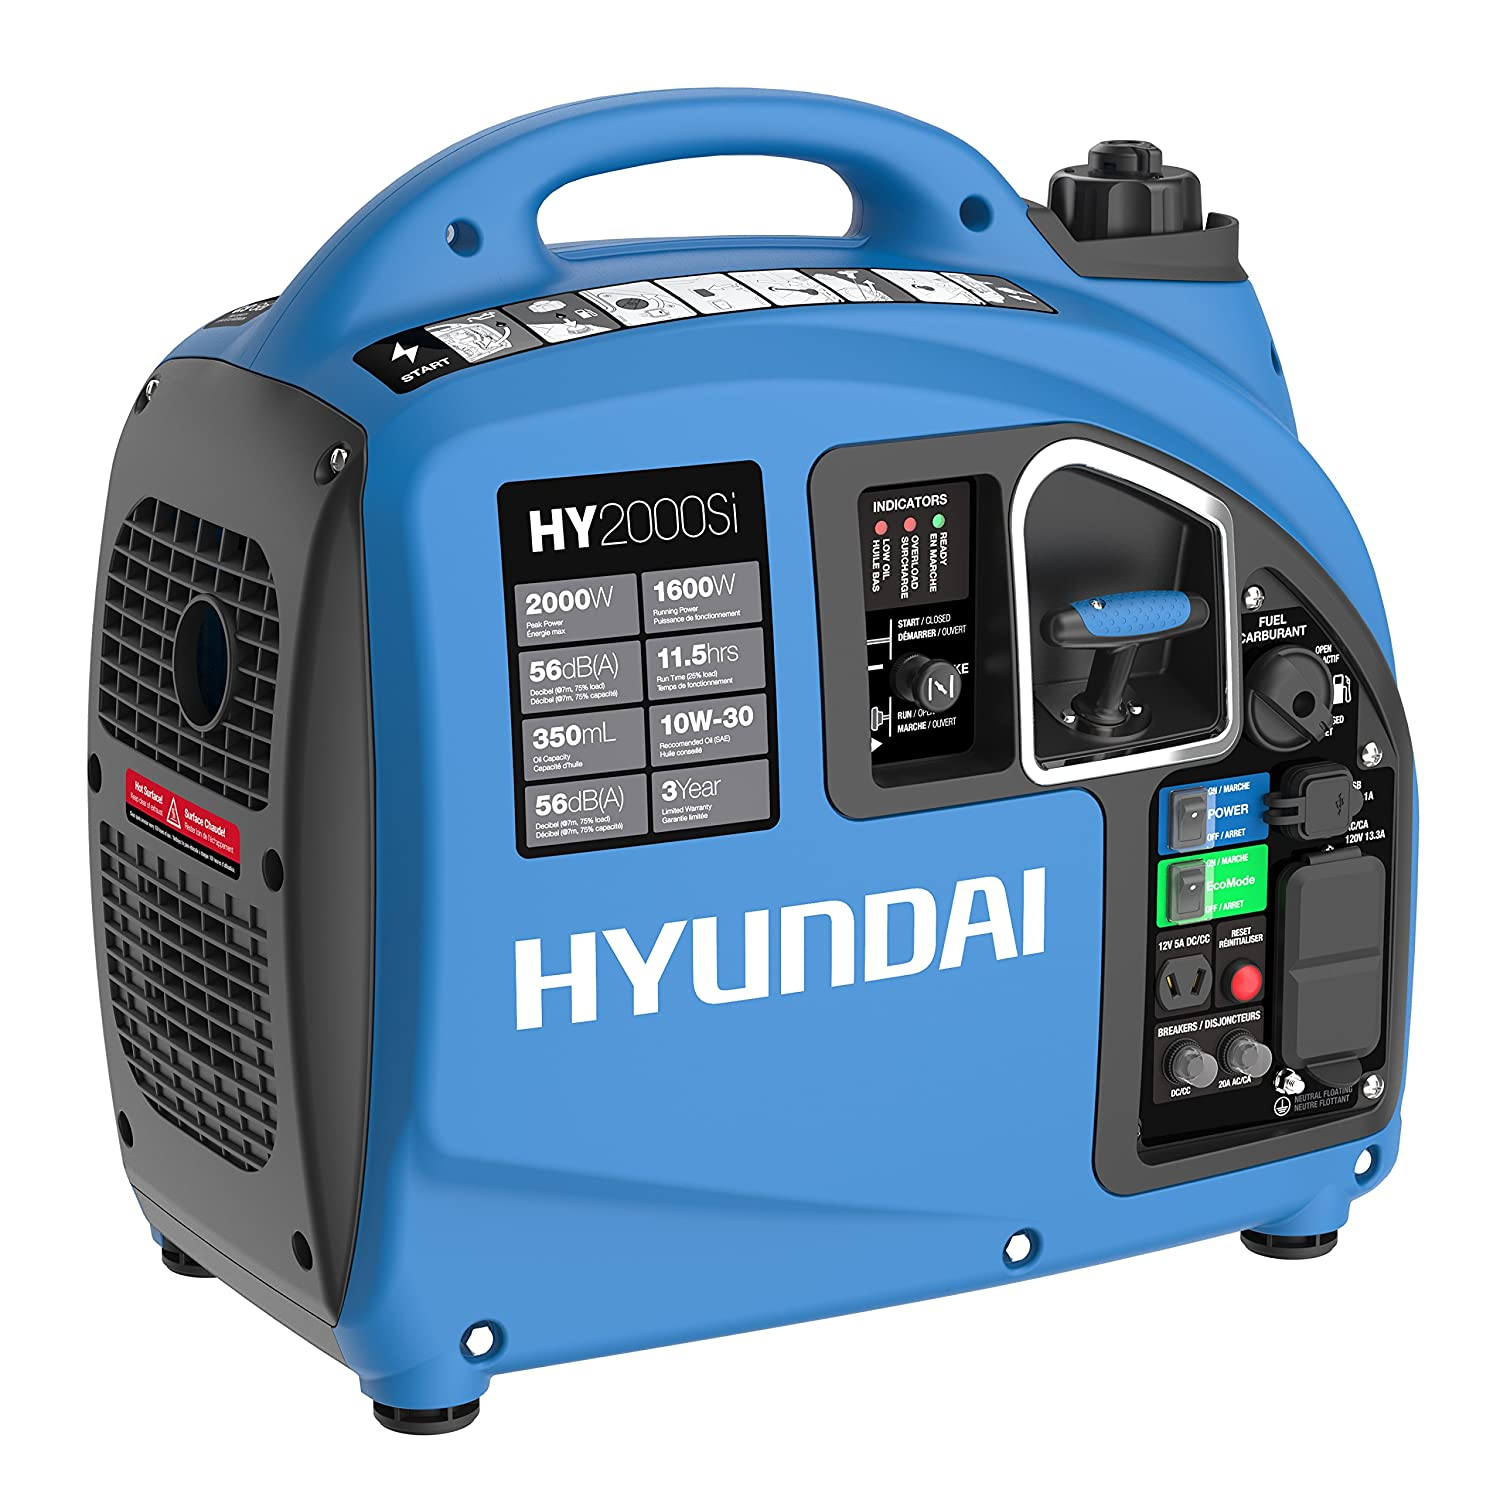 Amazon Hyundai HY2000si 2000 Running Watts 2200 Starting